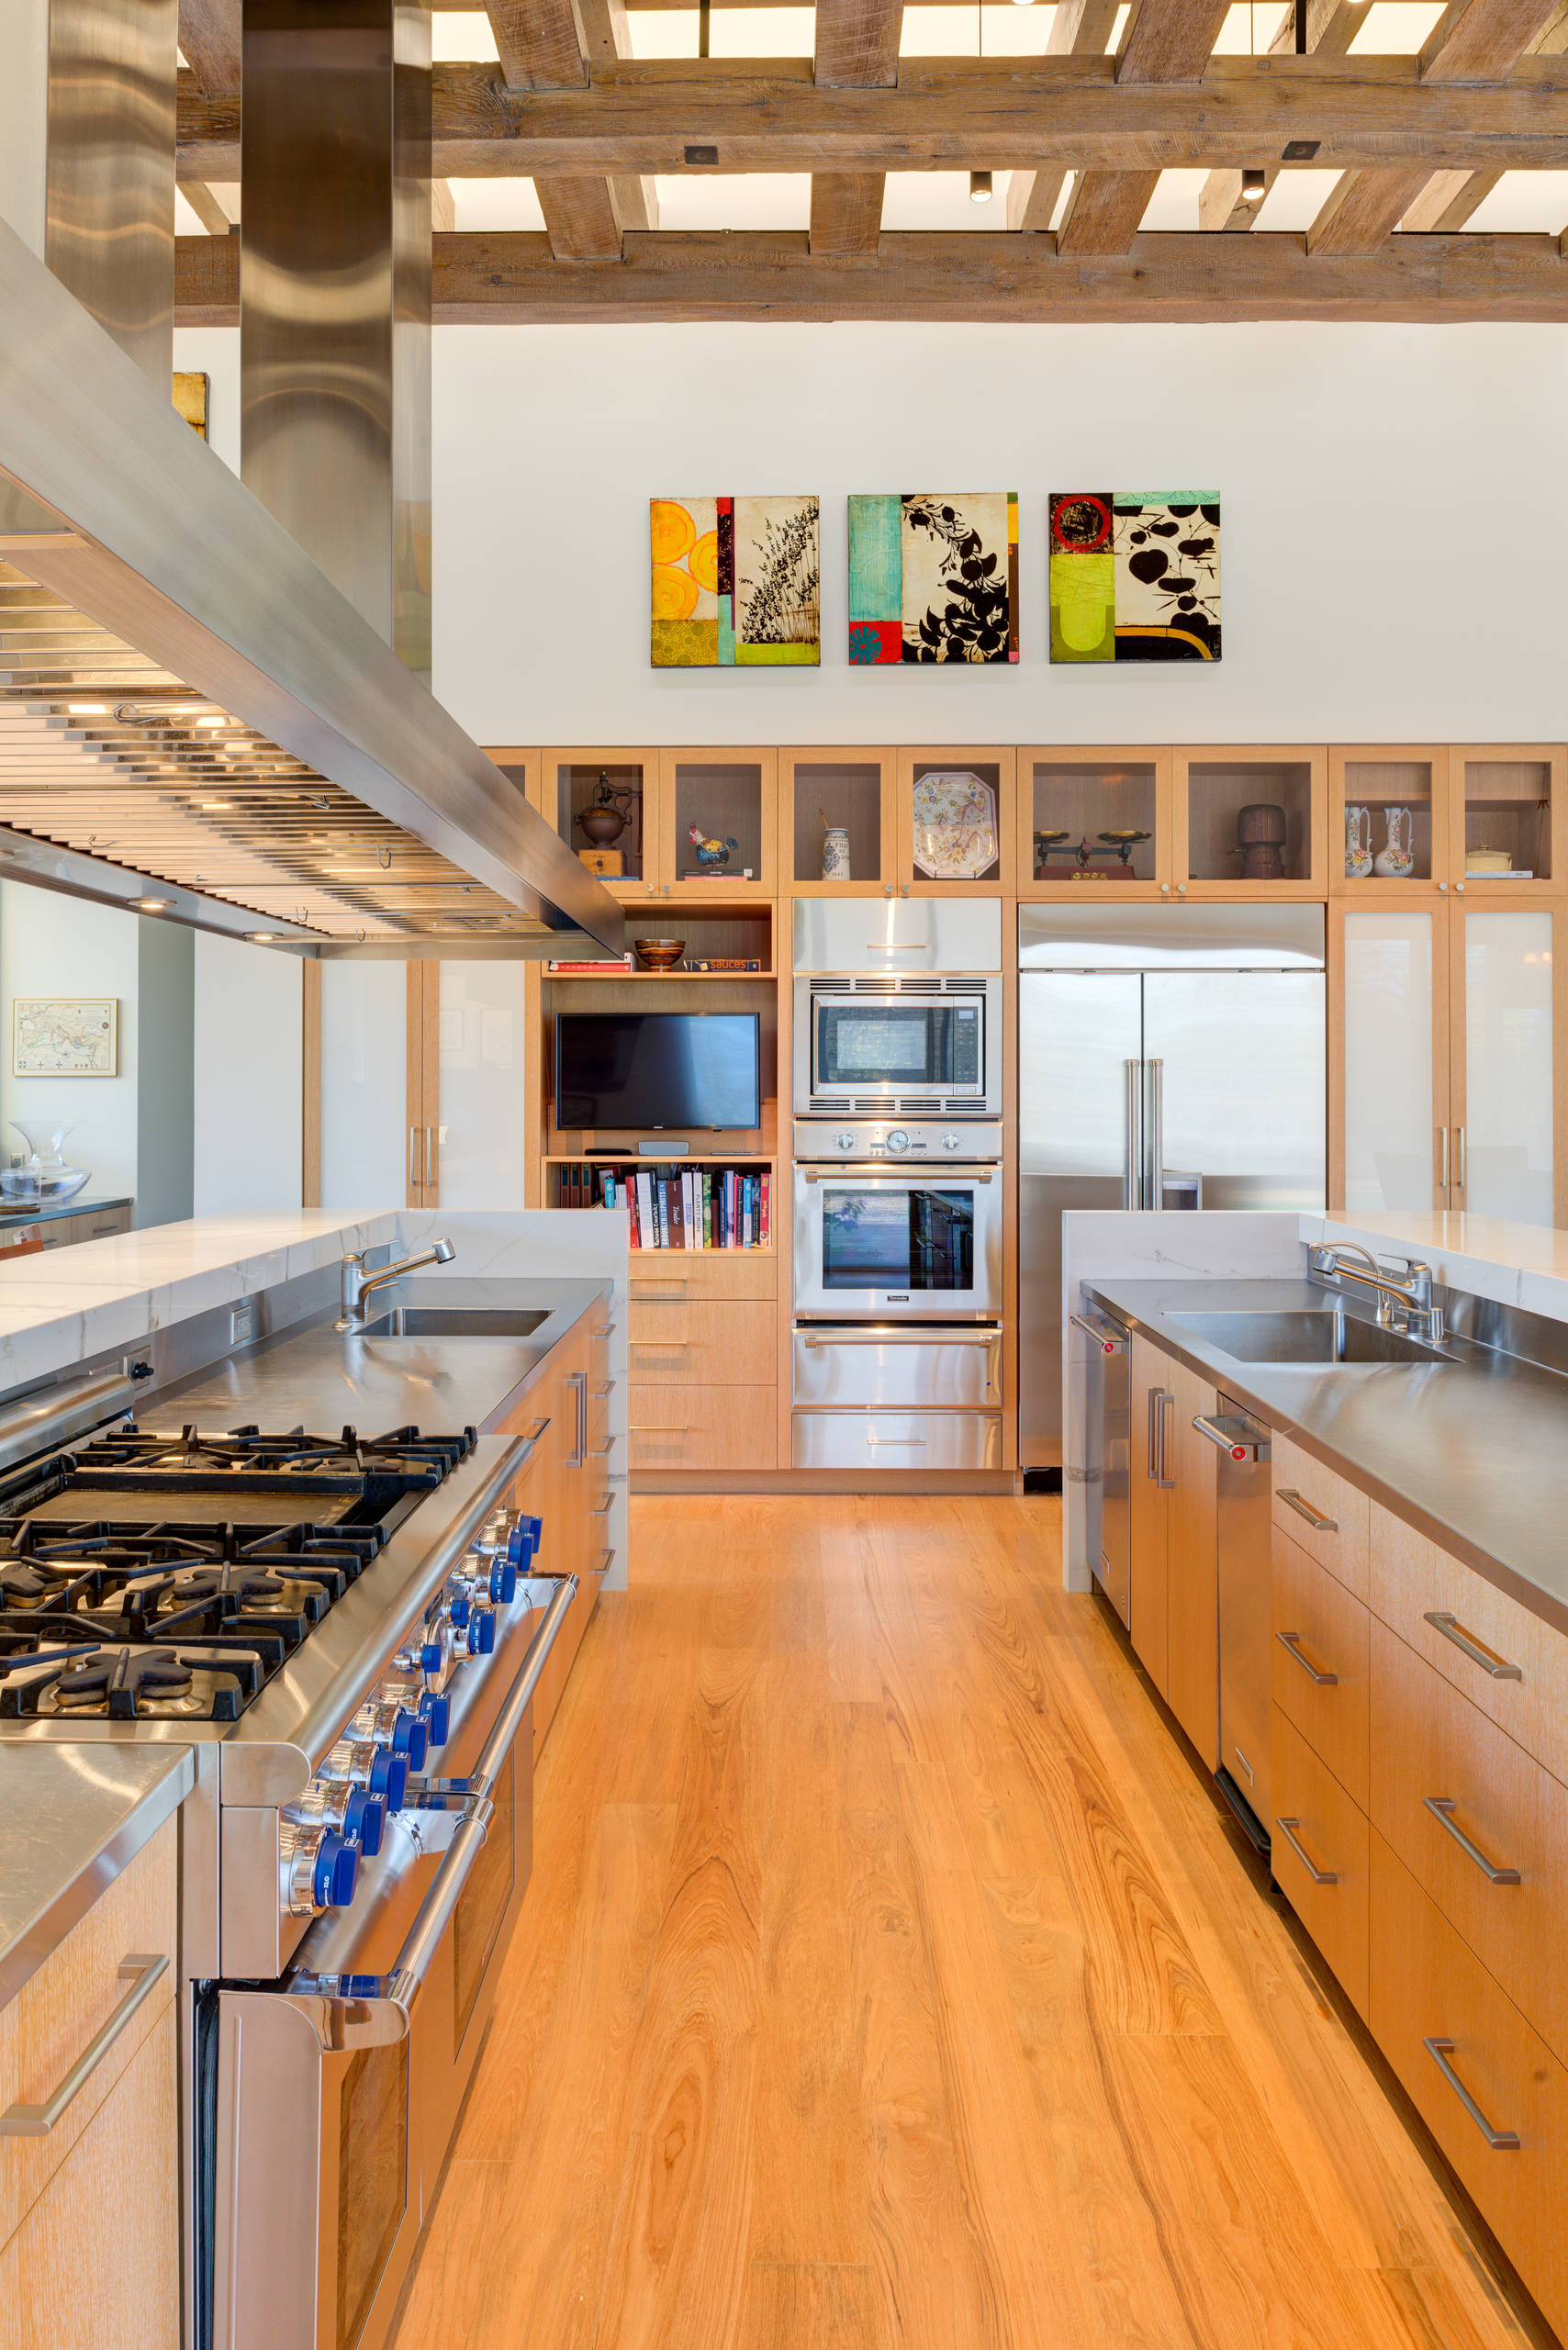 75 Beautiful Kitchen With Stainless Steel Countertops Pictures Ideas April 2021 Houzz